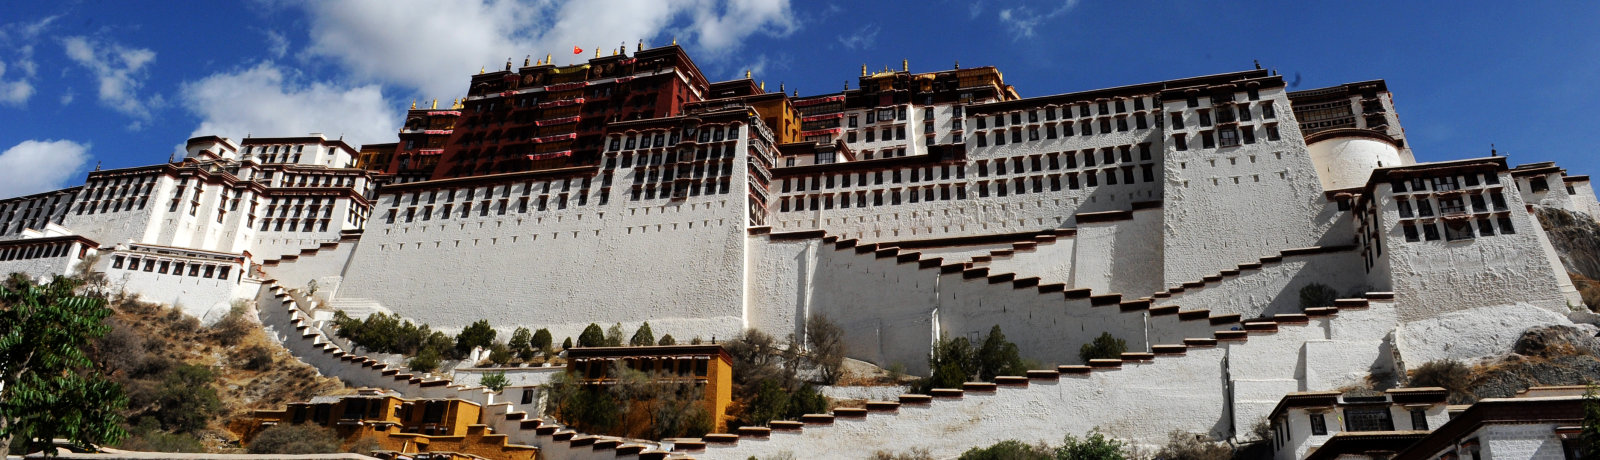 Lhasa – Kathmandu Overland Tour- Private Groups